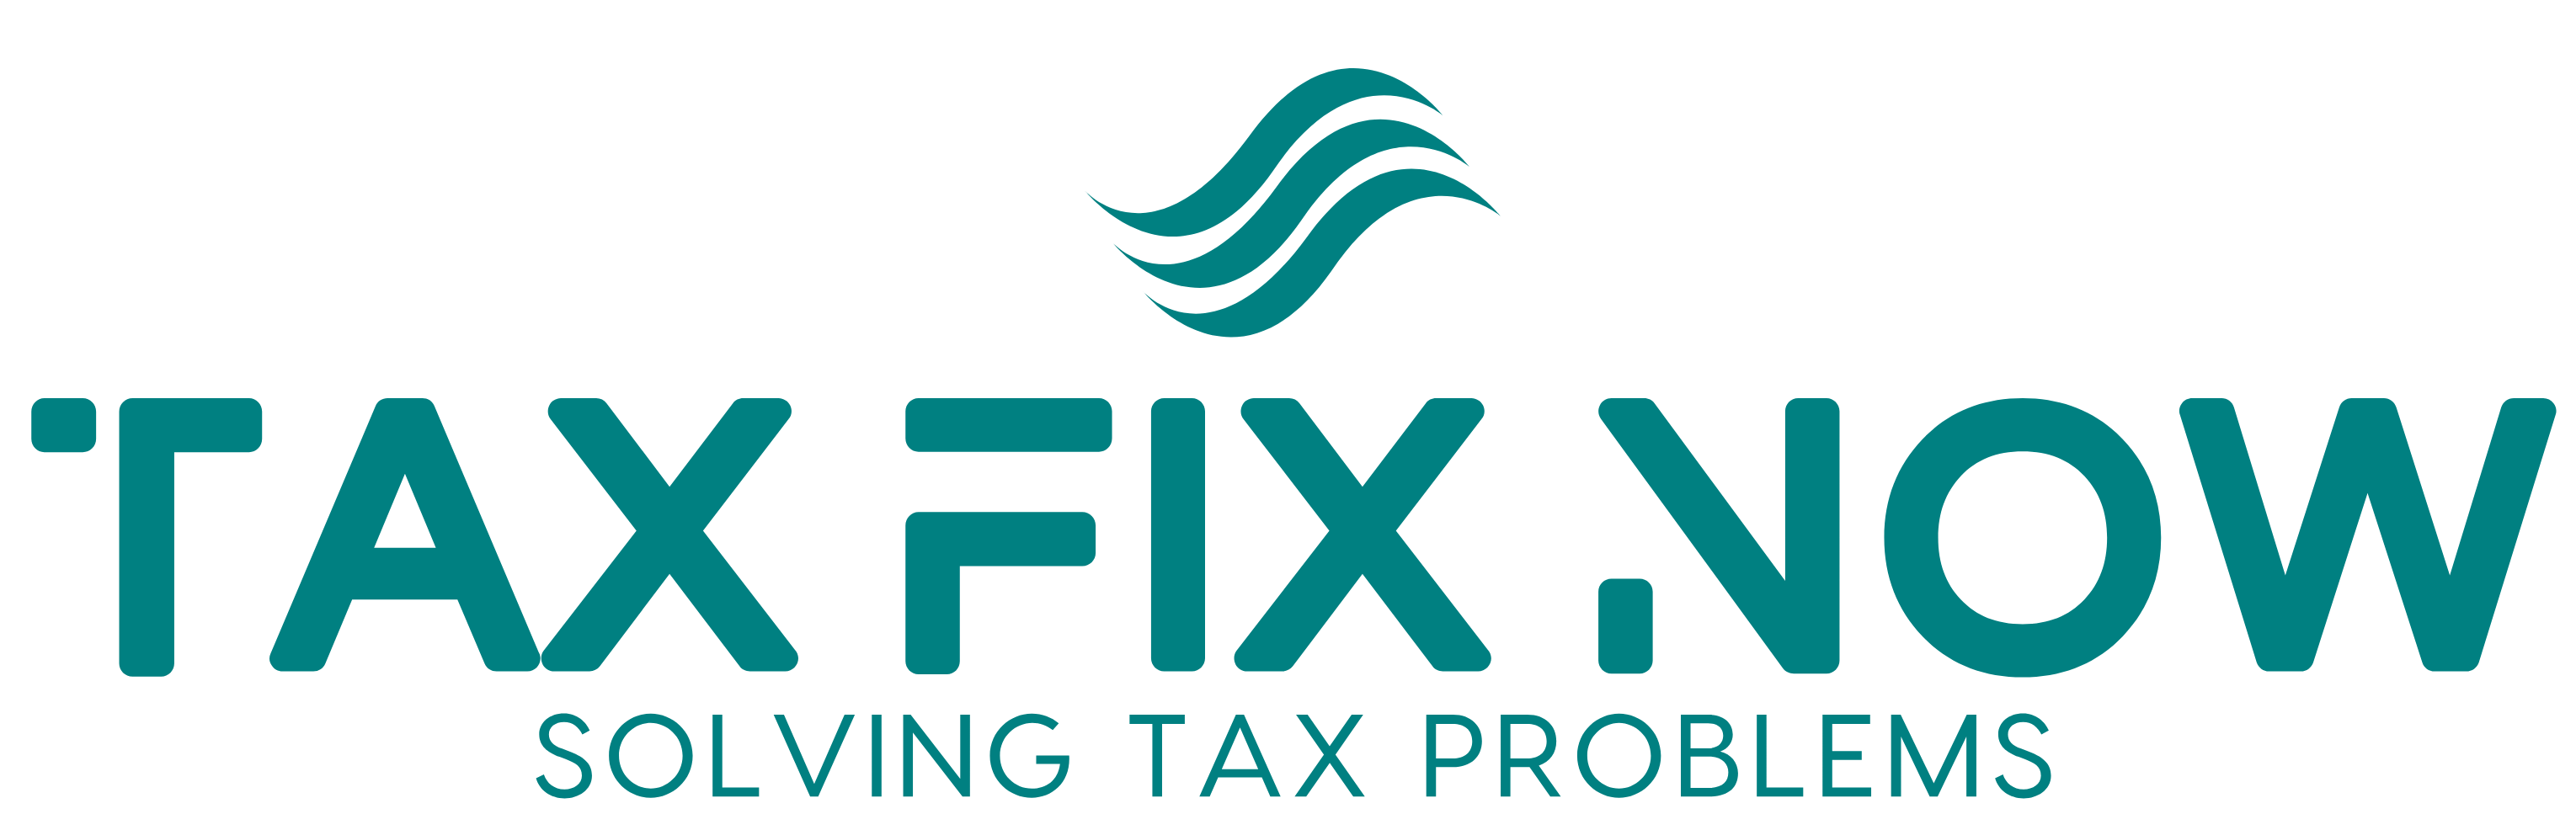 Highland Village, TX Bookkeeping Firm | Payroll Tax Problems Page | Tax Fix Now